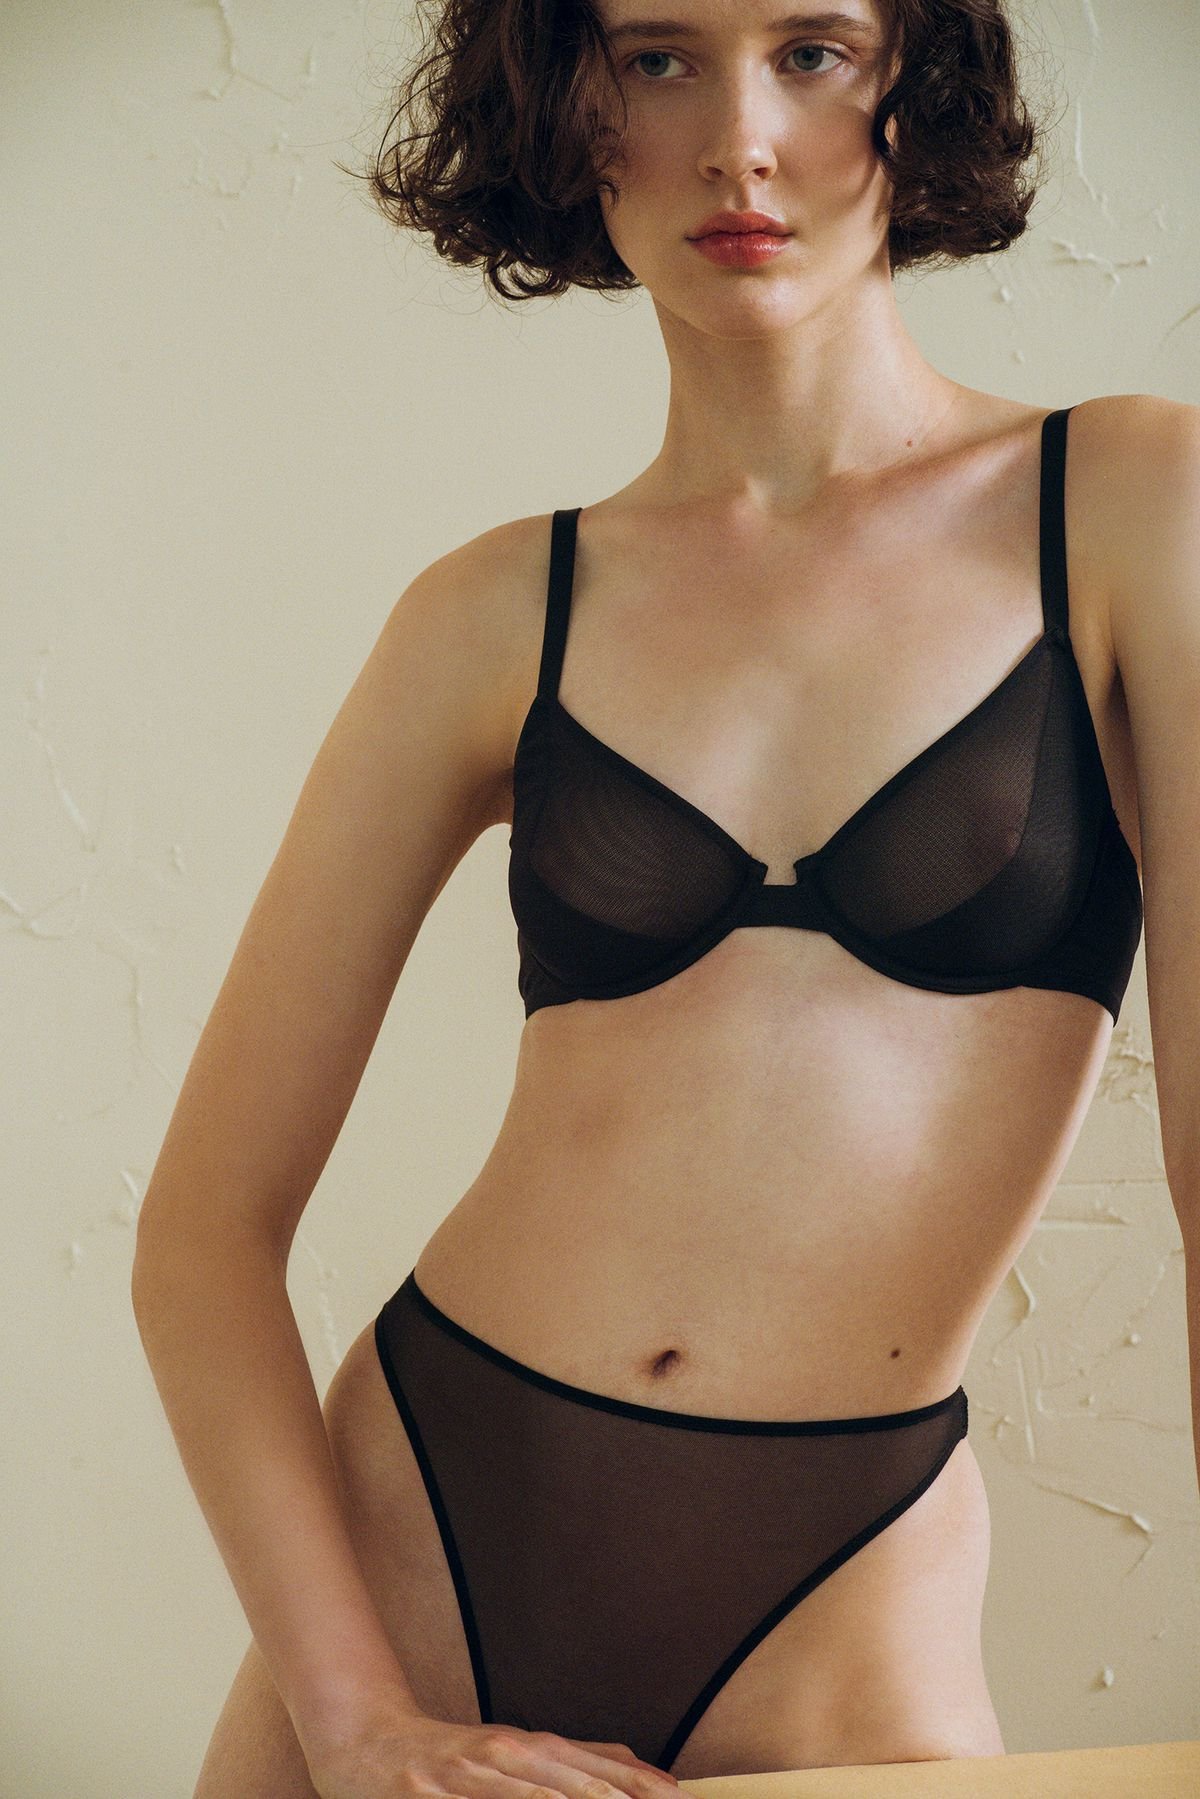 3072ecf86 A model in a sheer black lingerie set from The Great Eros